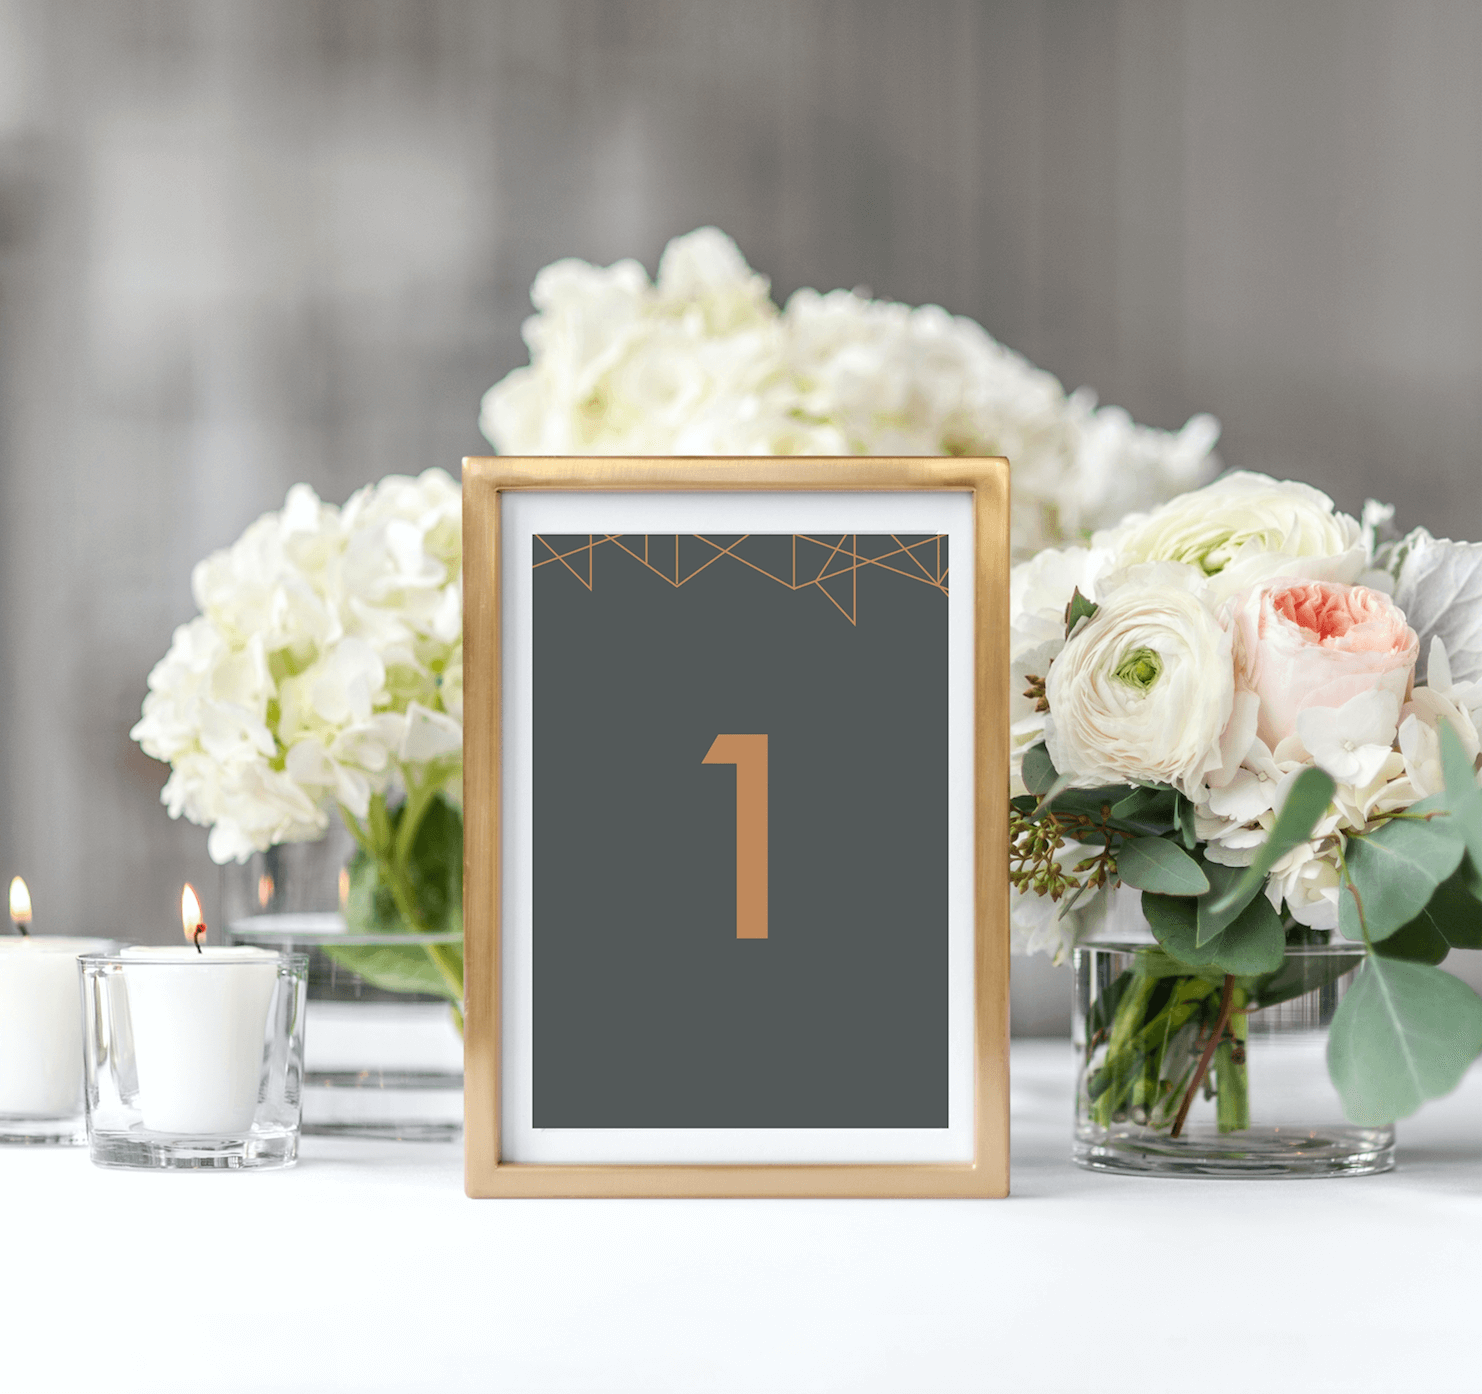 Geometric Table Numbers - Designed by Rodo Creative